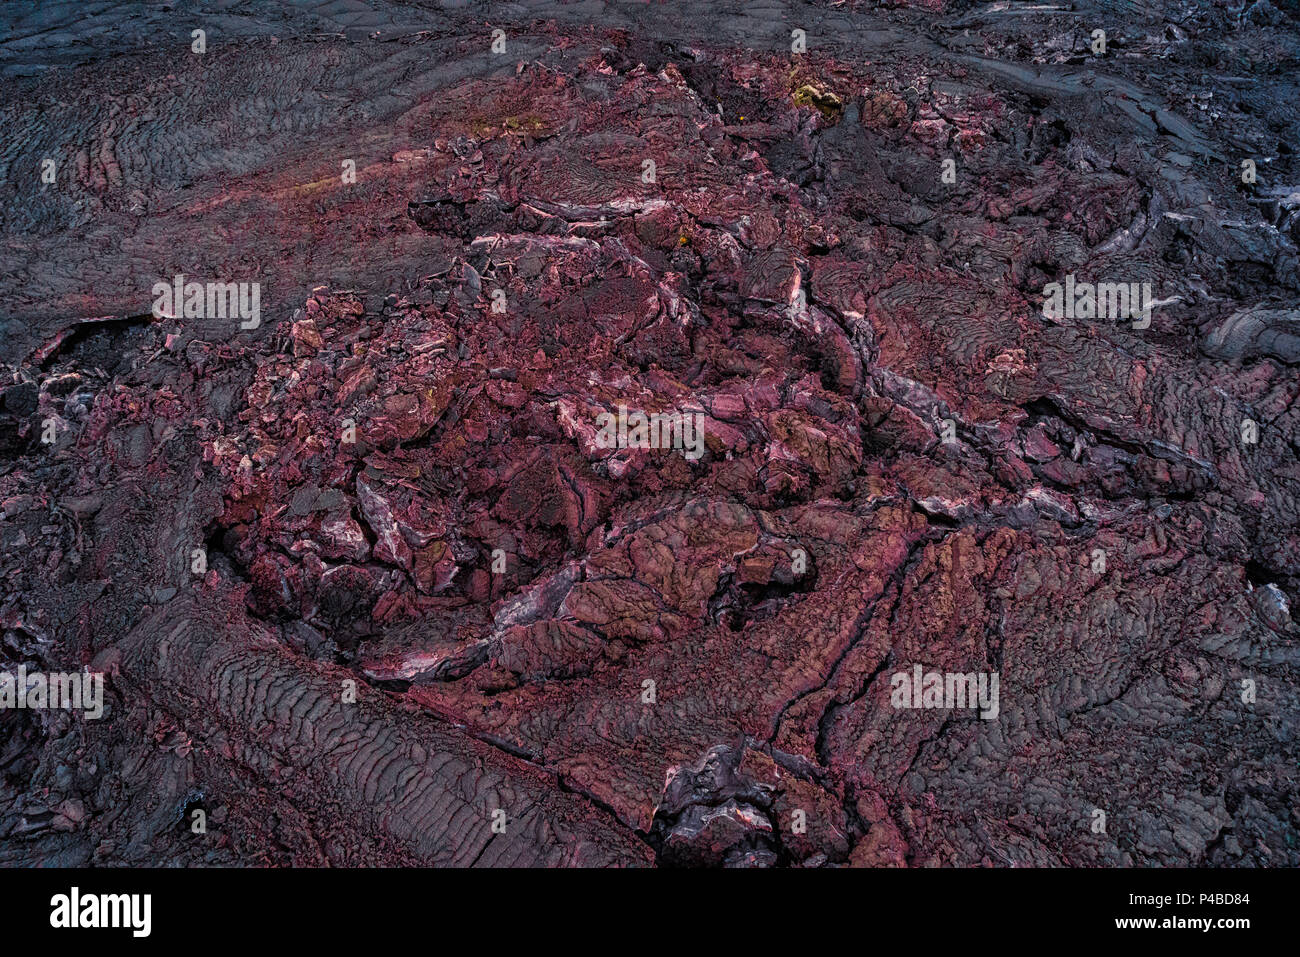 Aerial view of red hot lava. August 29, 2014 a fissure eruption started in Holuhraun at the northern end of a magma intrusion, which had moved progressively north, from the Bardarbunga volcano. Bardarbunga is a stratovolcano located under Vatnajokull, Iceland's most extensive glacier. Picture Date: October 30, 2014 - Stock Image